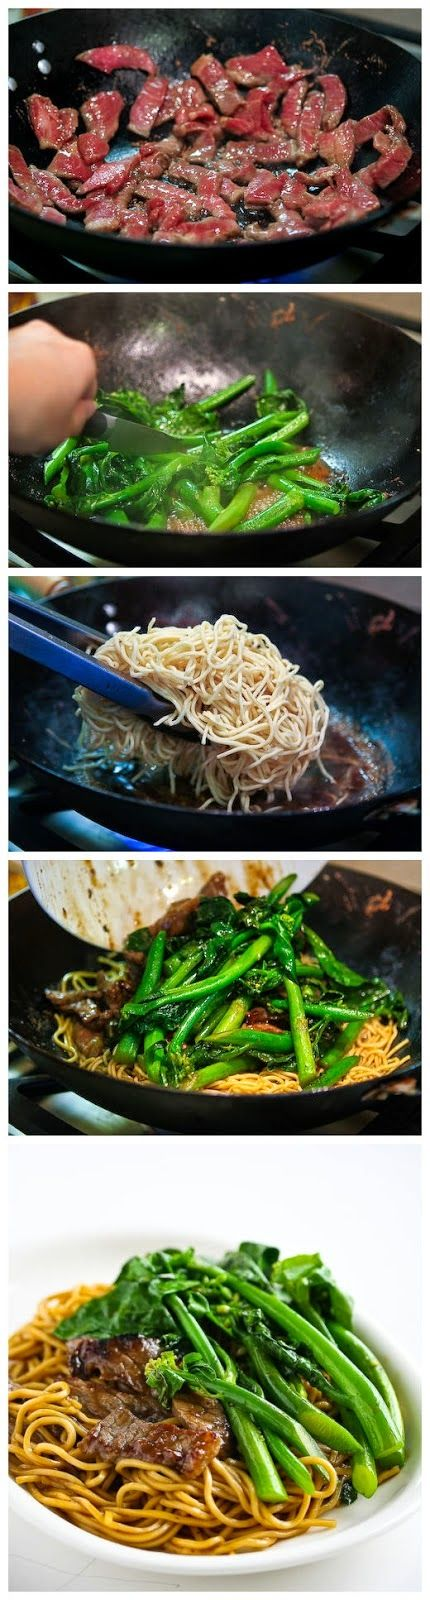 Chinese Broccoli Beef Noodle  Ingredients       3 tablespoons soy sauce      3 tablespoons oyster sauce      3 tablespoons Shaoxing wine,...